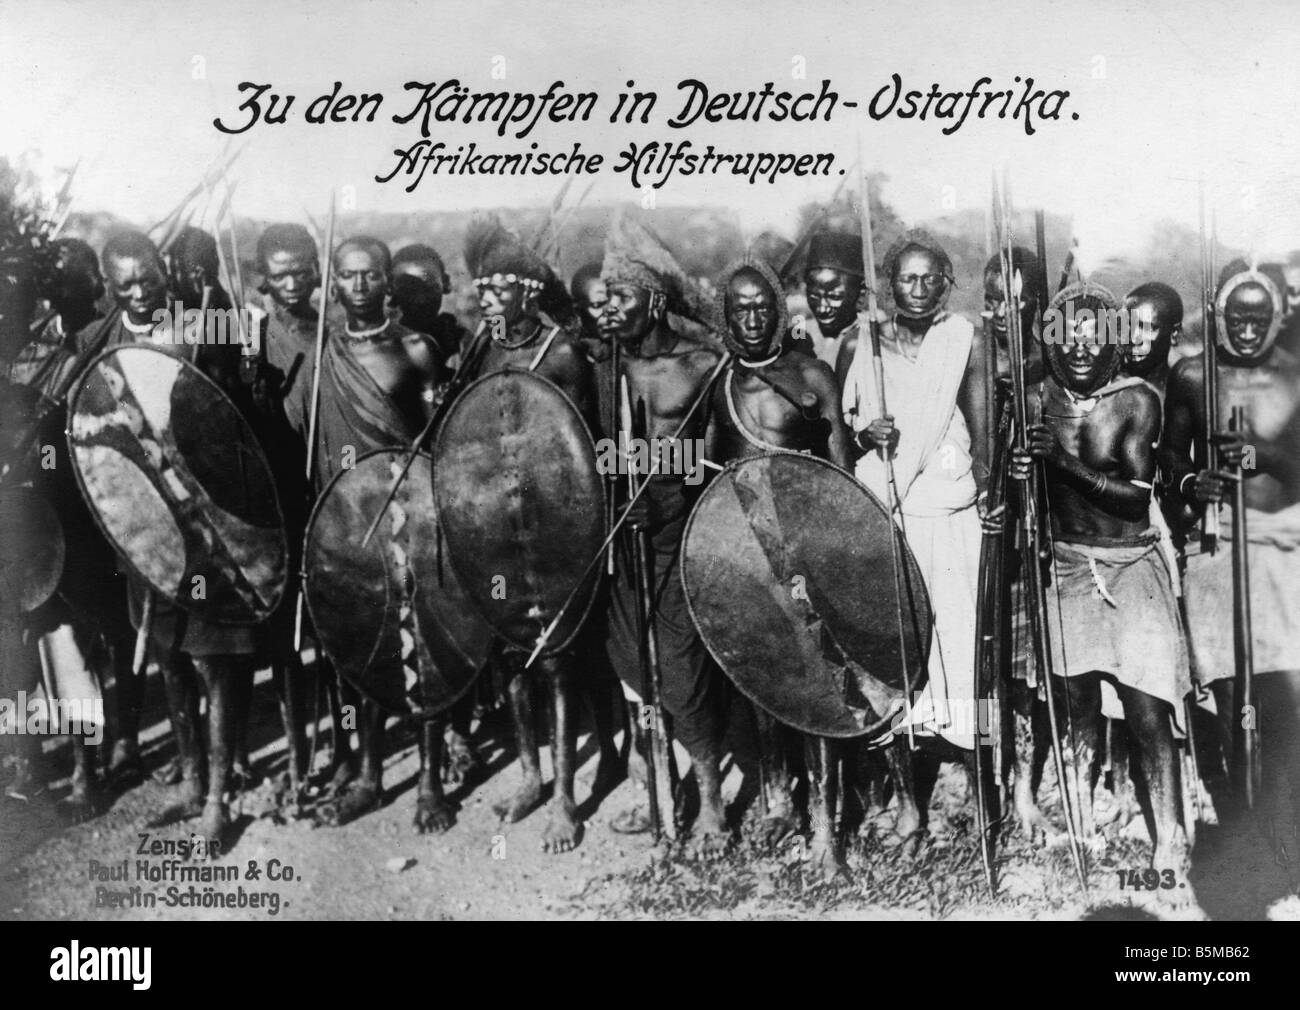 African auxilliary troops c 1915 Ethnology Africa African auxilliary troops from German East Africa Tanzania Photo - Stock Image